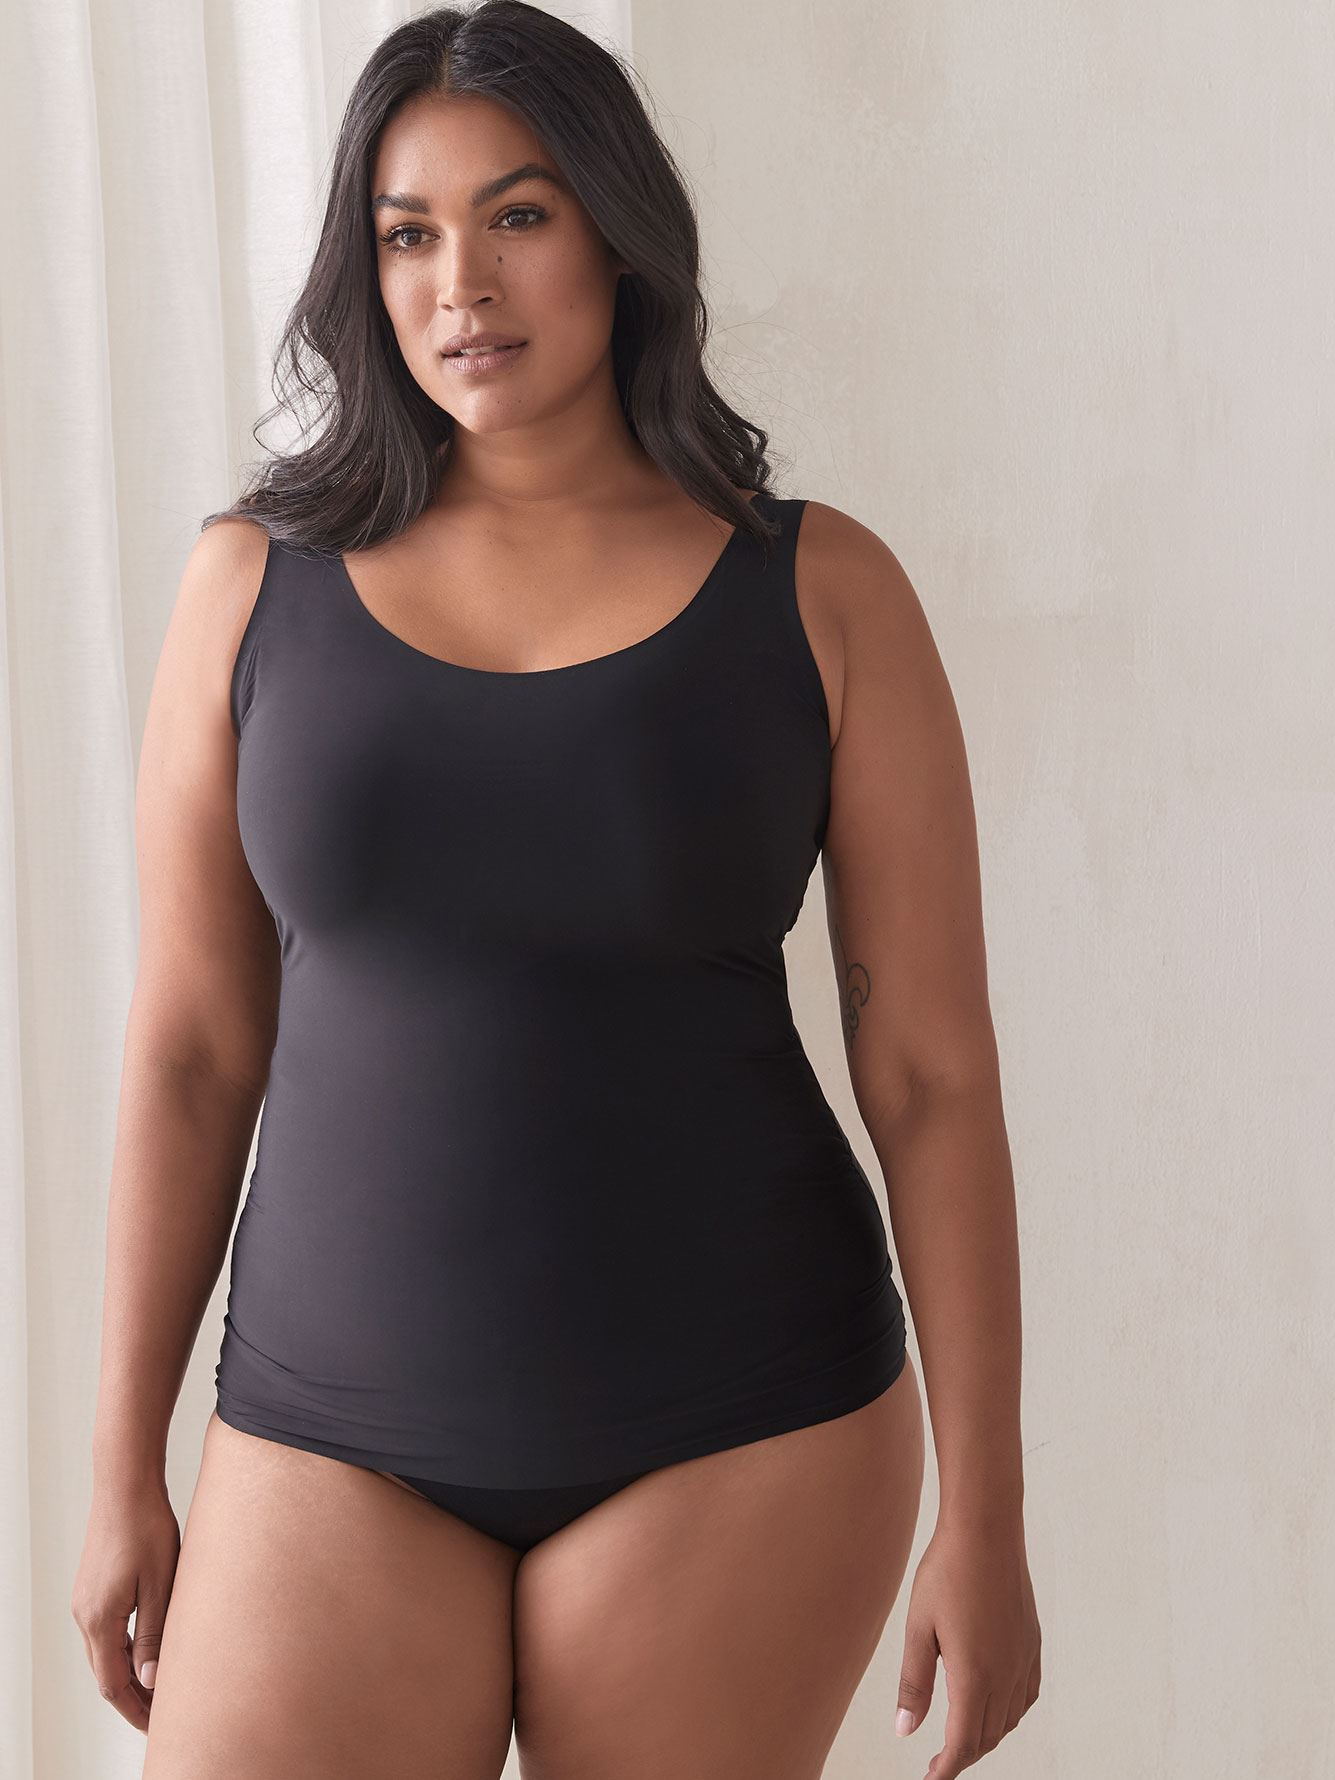 6-in-1 Shapewear Tank Top - Yummie